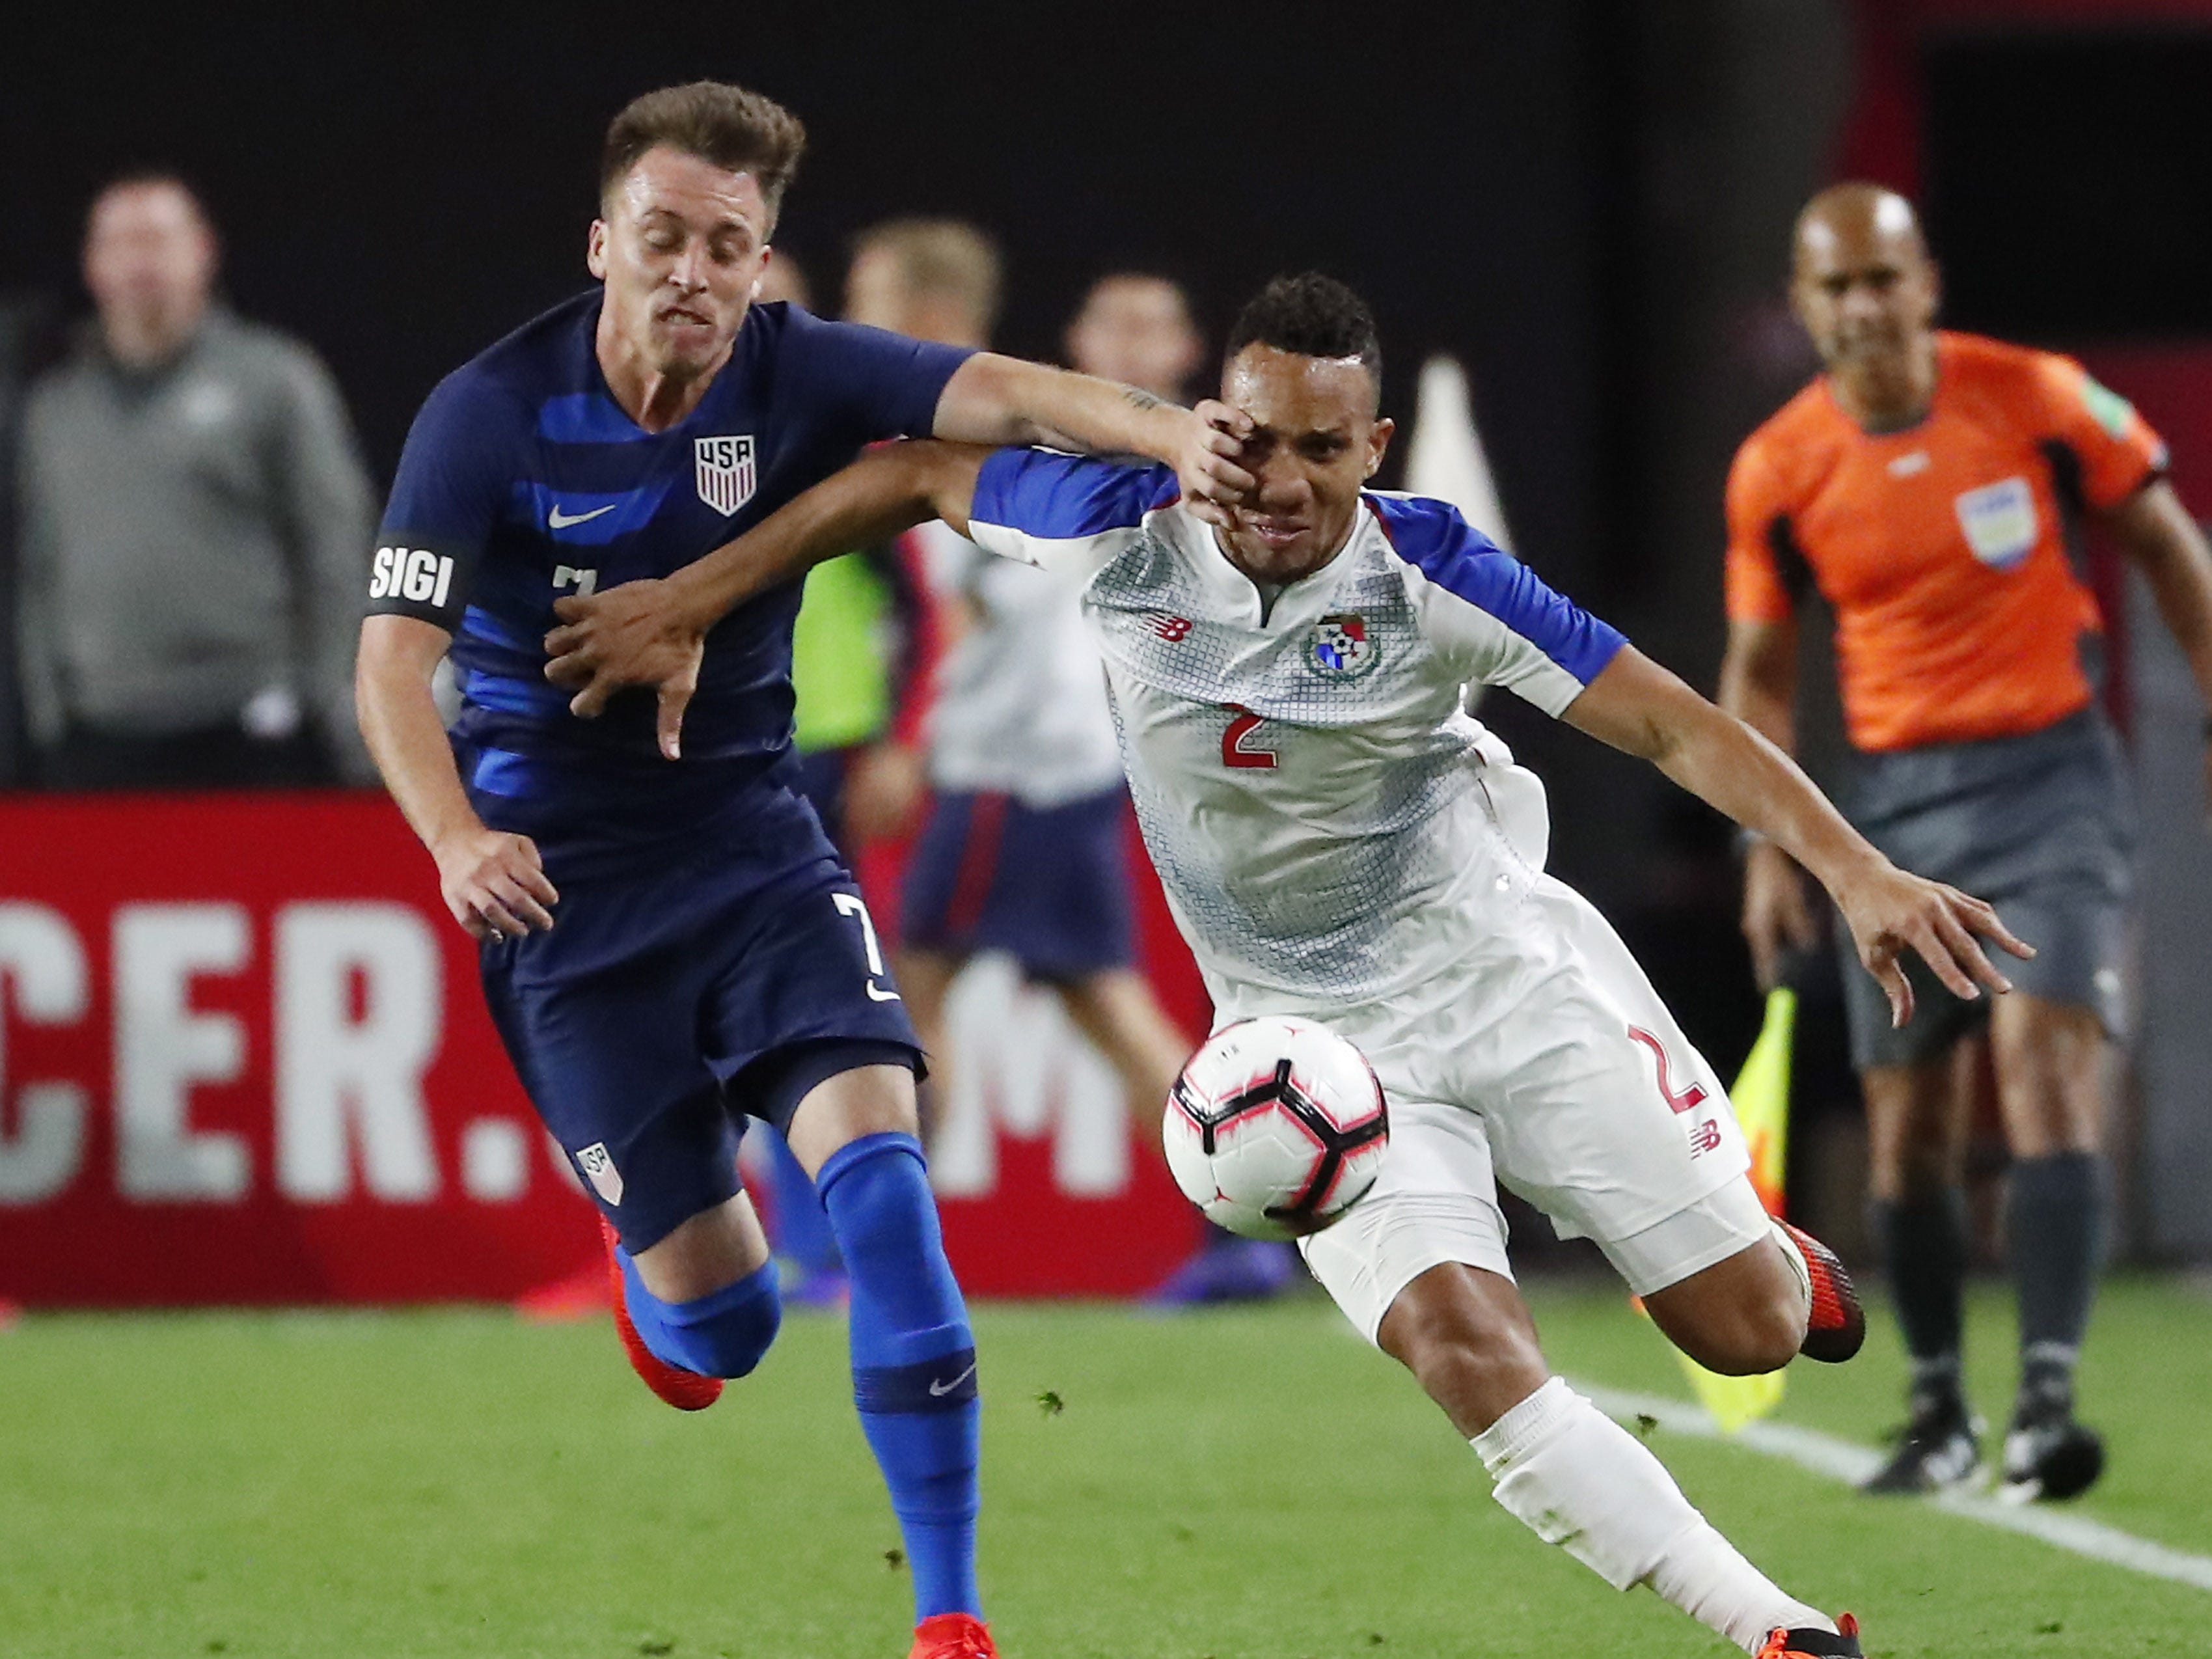 U.S. midfielder Corey Baird (7) fights Panama defender Francisco Palacios (2) for the ball during the second half of a friendly on Jan. 27, 2019 in Glendale, Ariz. The U.S. won 3-0.